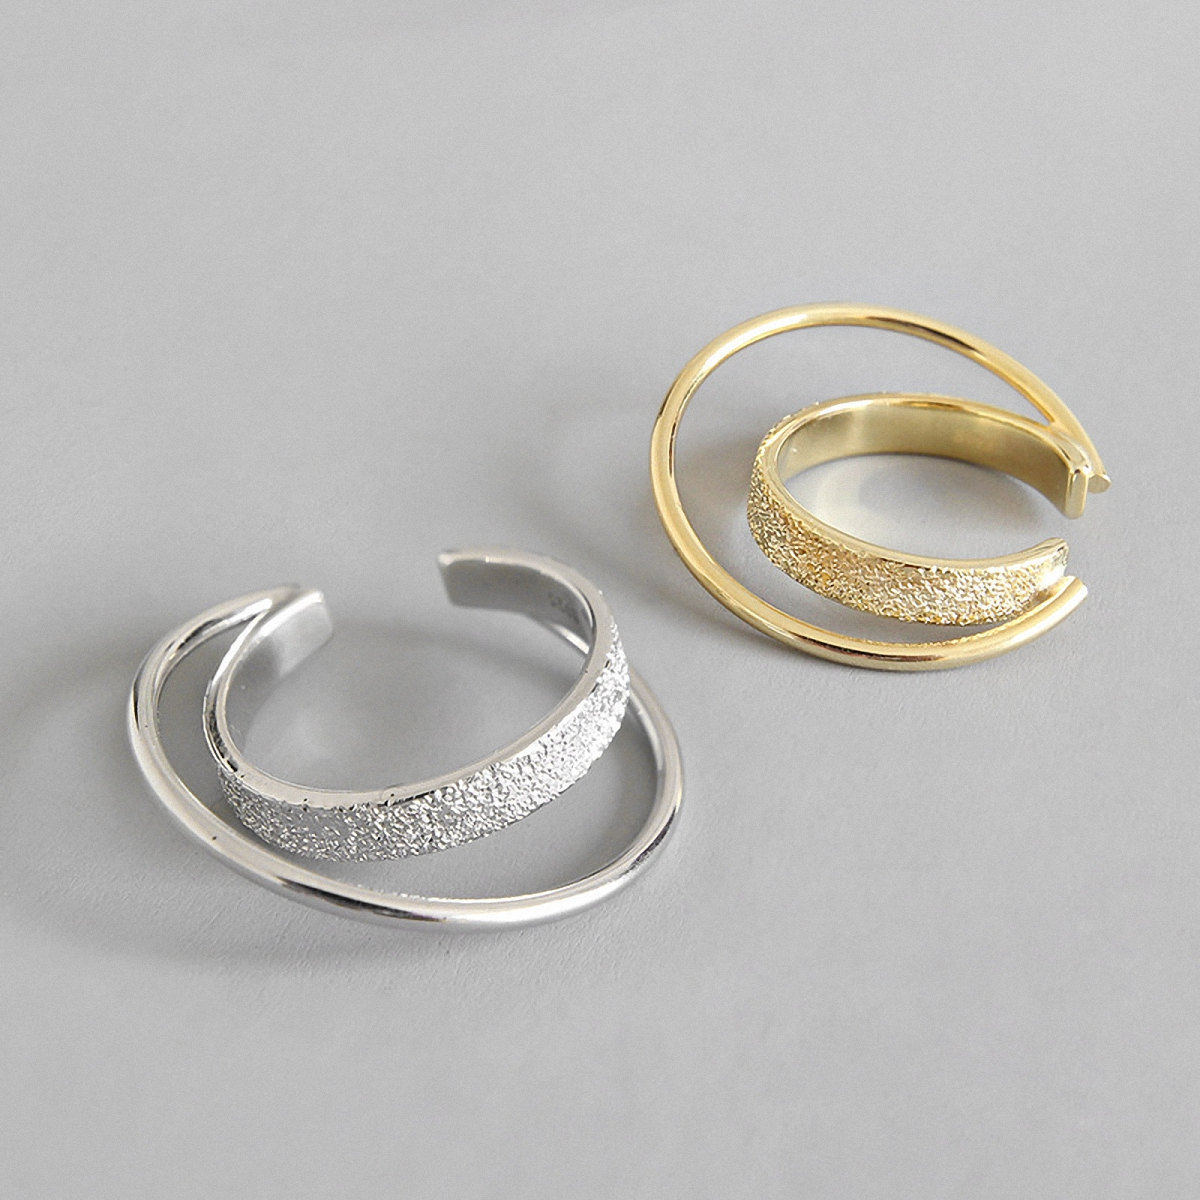 Unique Design 925 Sterling Silver Crossover Double Layers Round Rings for Women